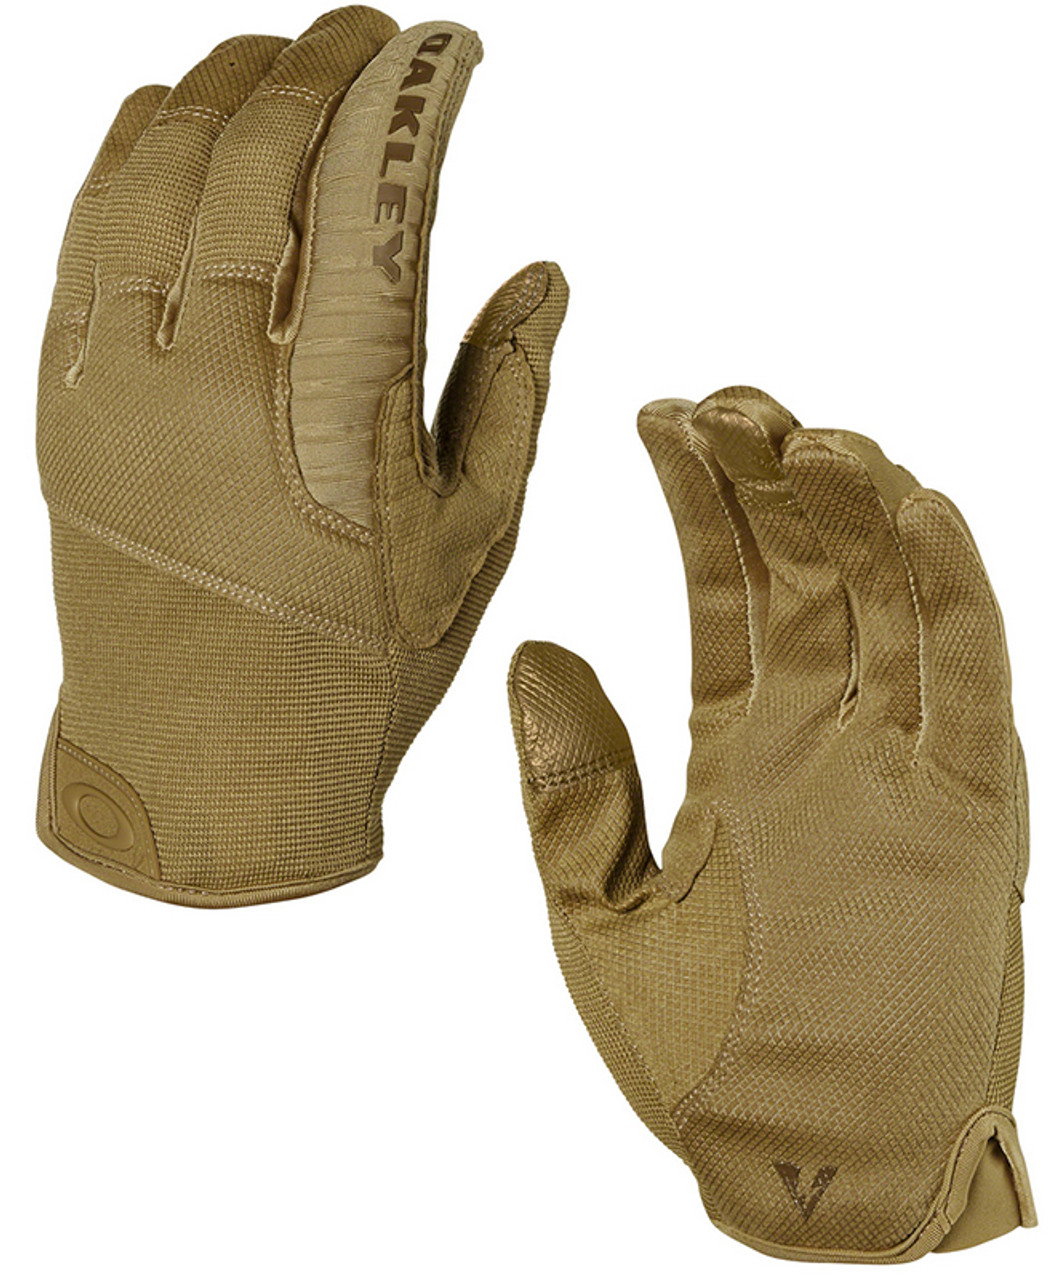 oakley si tactical gloves 4nj7  Oakley SI Coyote Factory Lite Tactical Glove